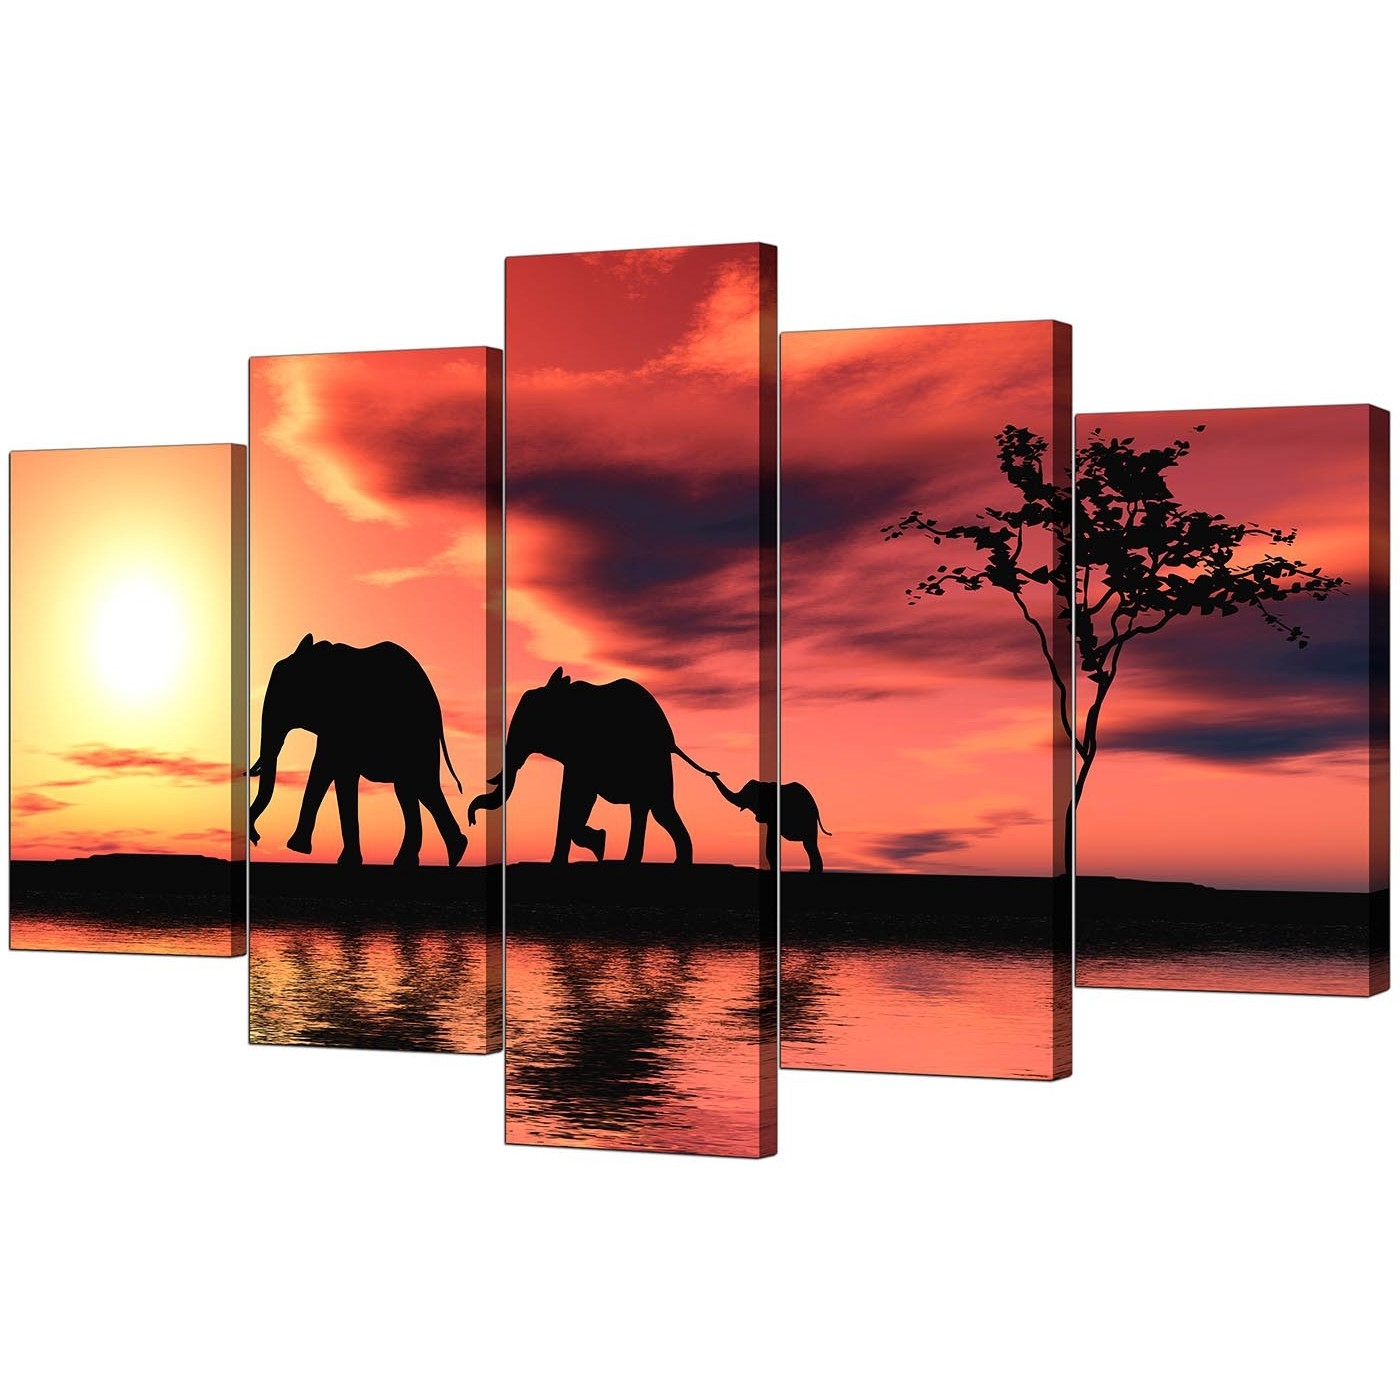 Extra Large Elephants Canvas Prints 5 Piece In Orange In Trendy Elephant Canvas Wall Art (View 9 of 15)